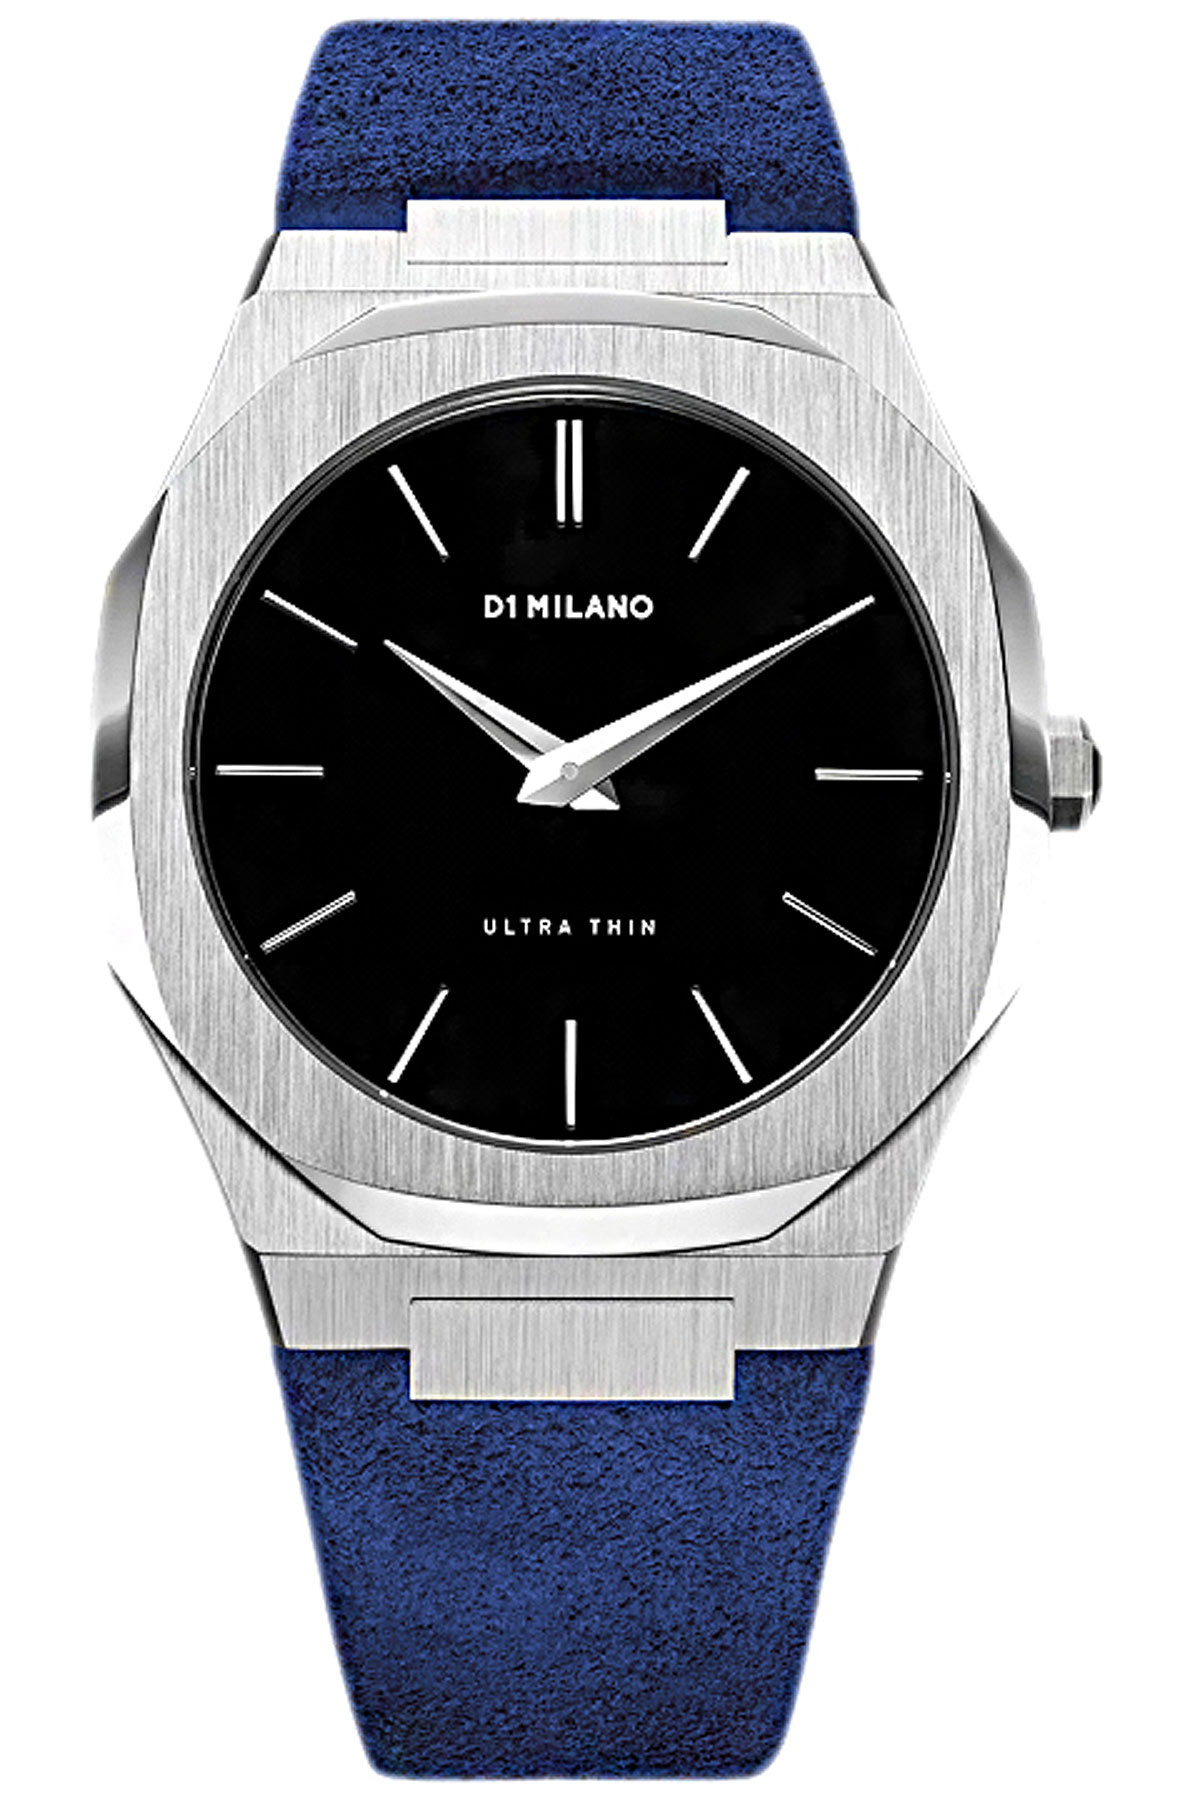 D1 Milano Watch for Men, Capri Blue, Suede leather, 2019